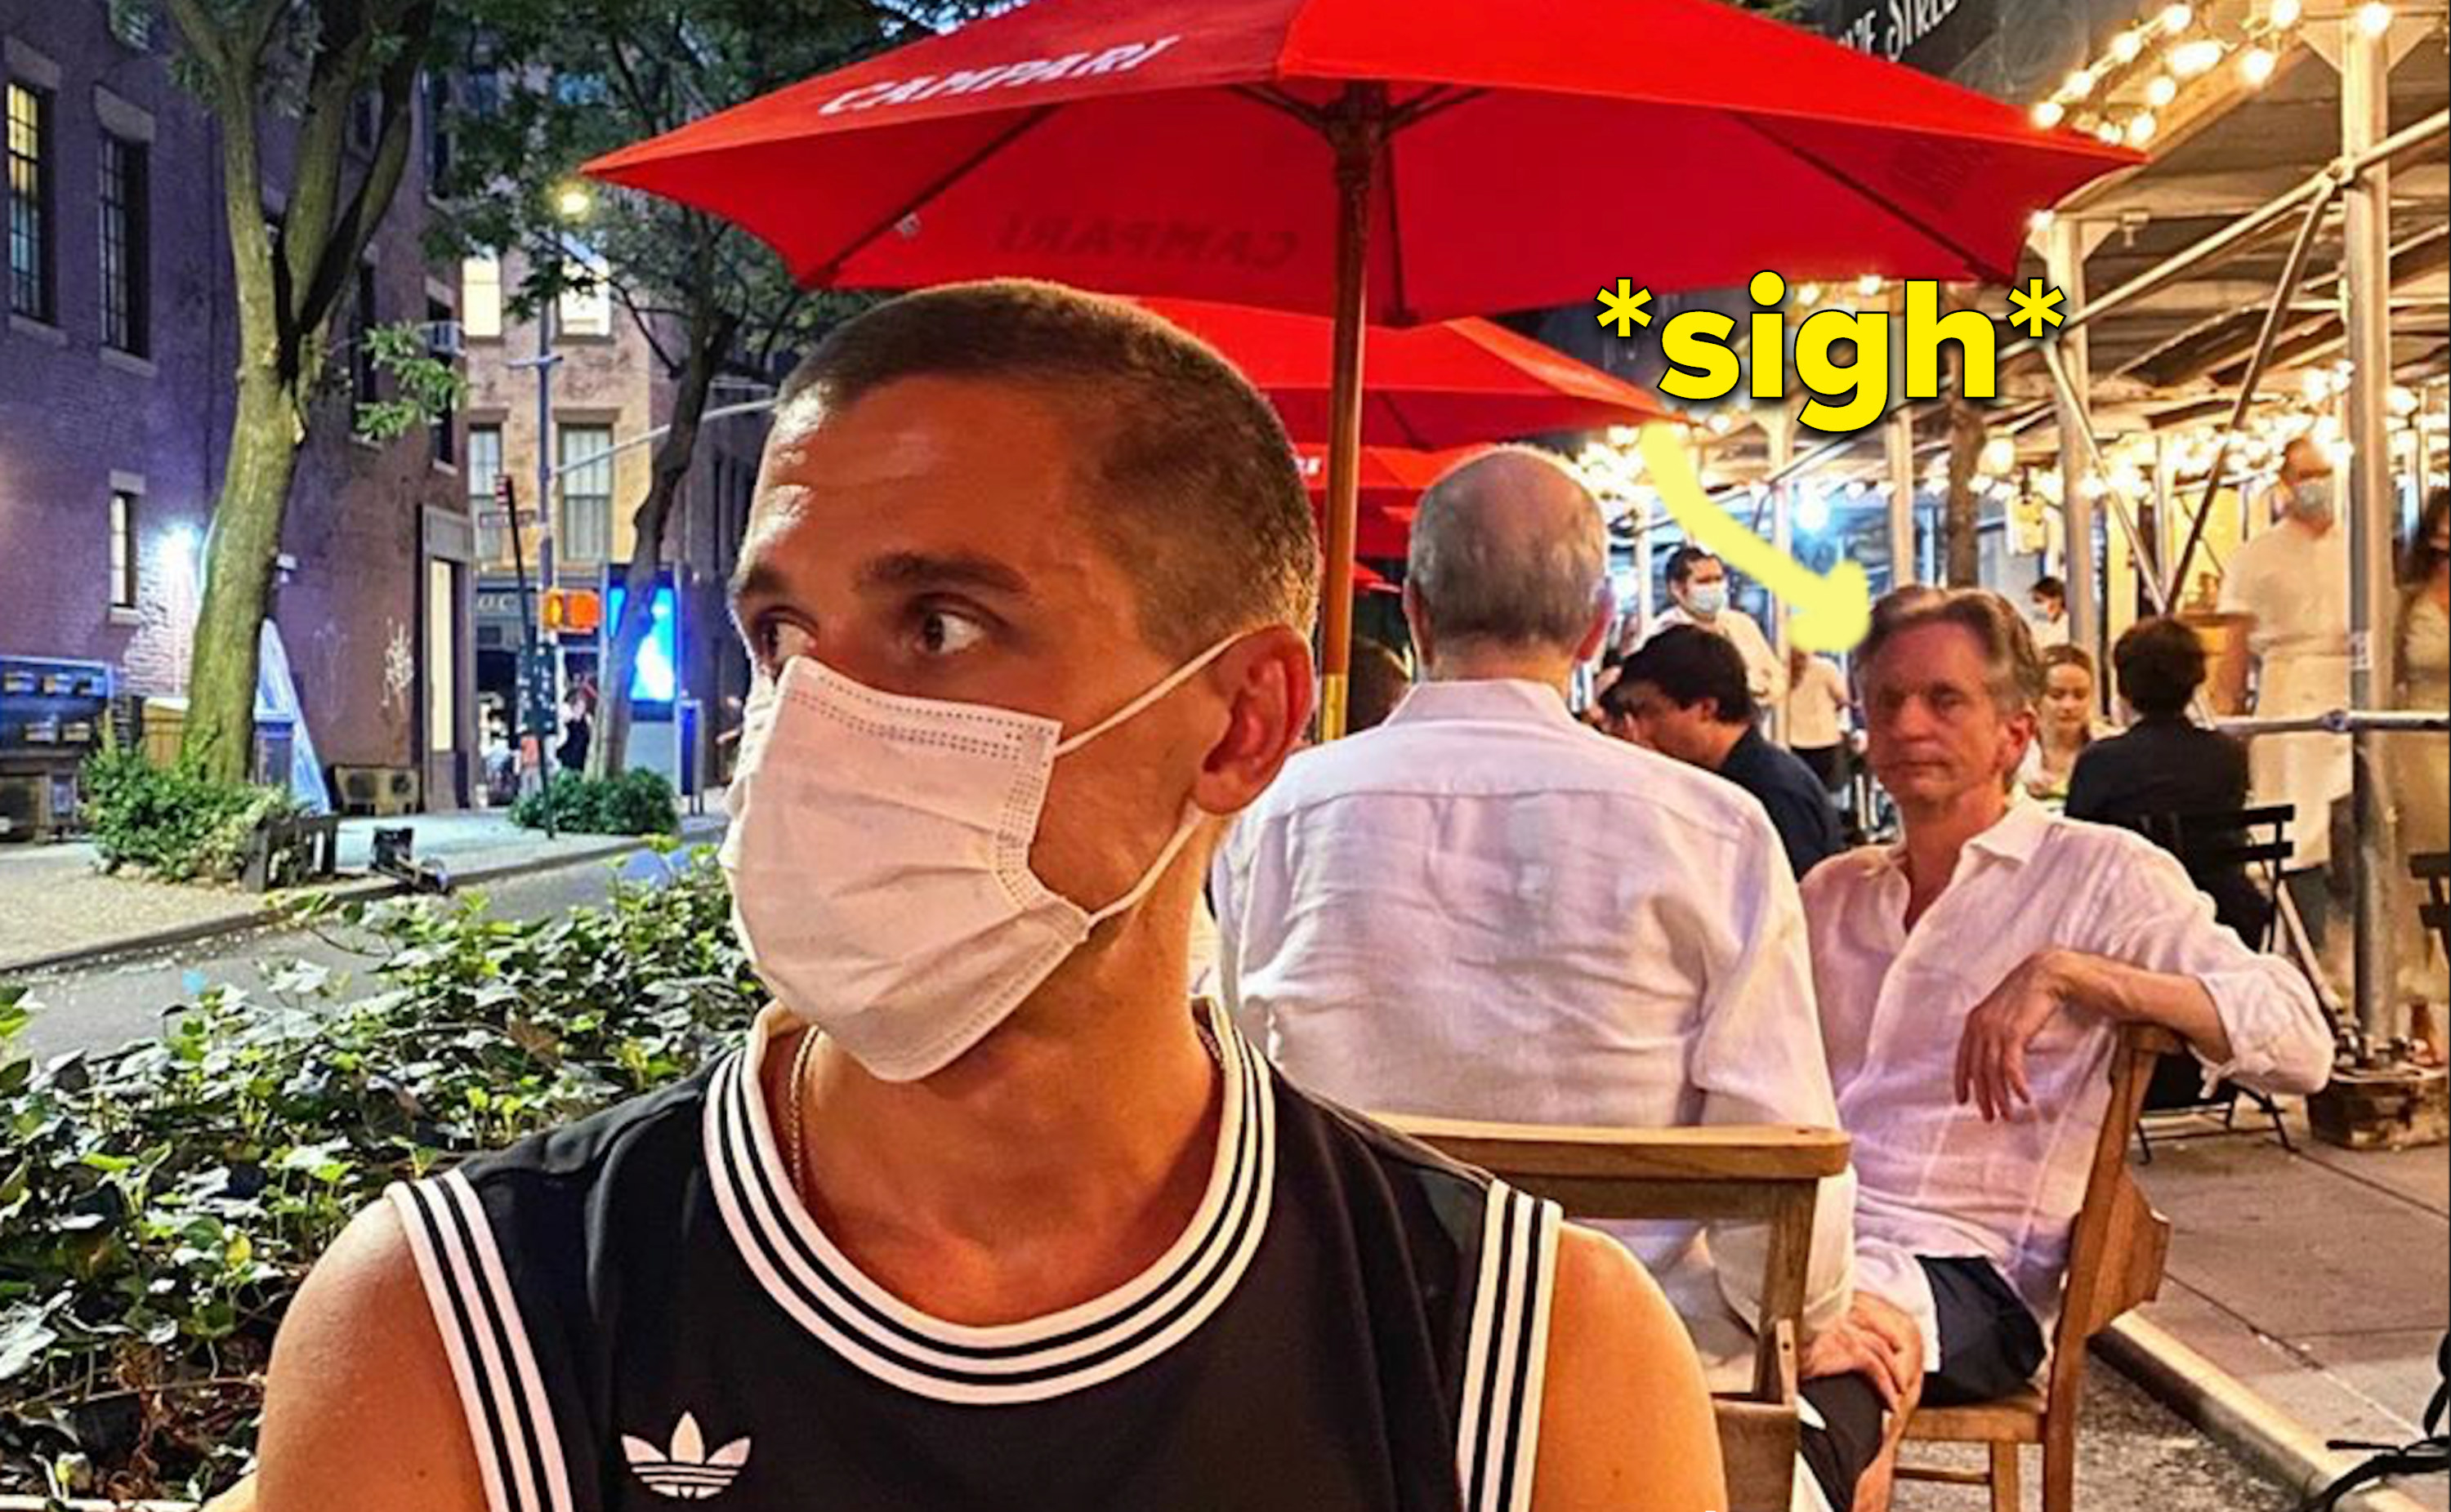 Arrow points to man staring with a straight face in the background at Antoni